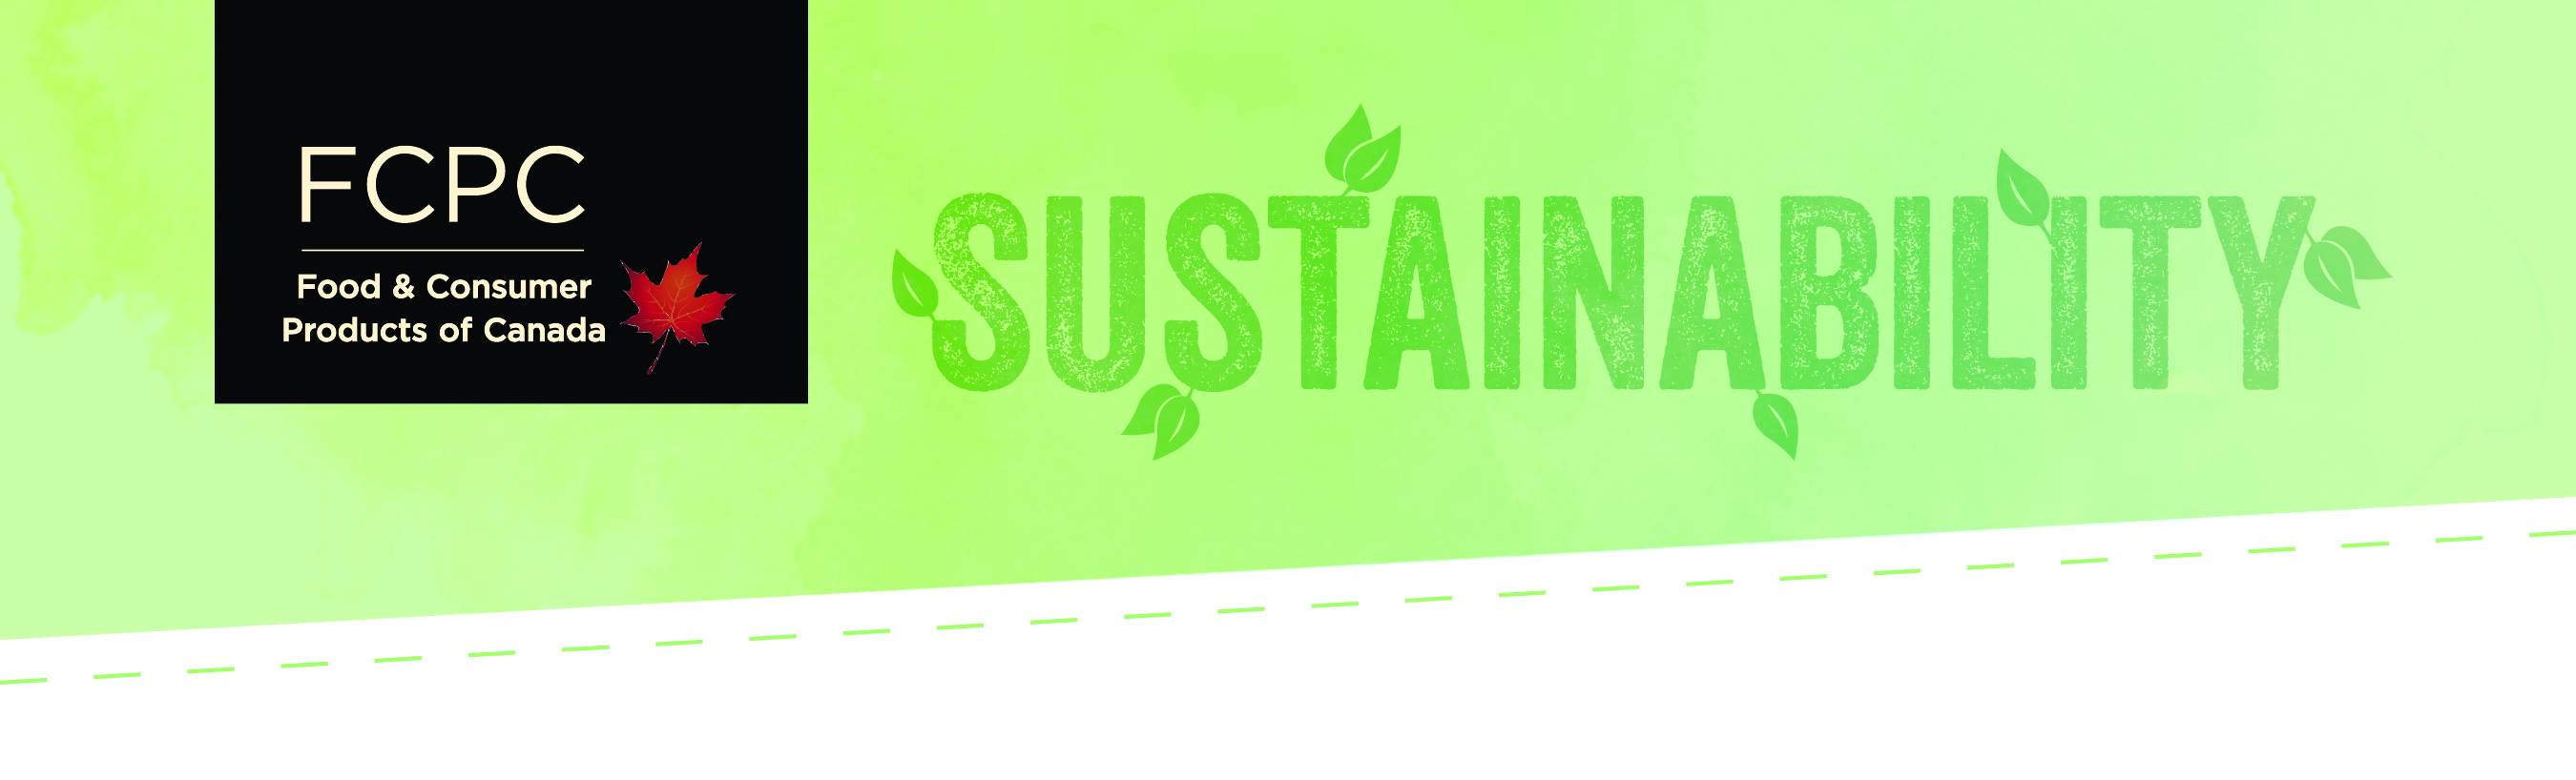 how to develop sustainability policy